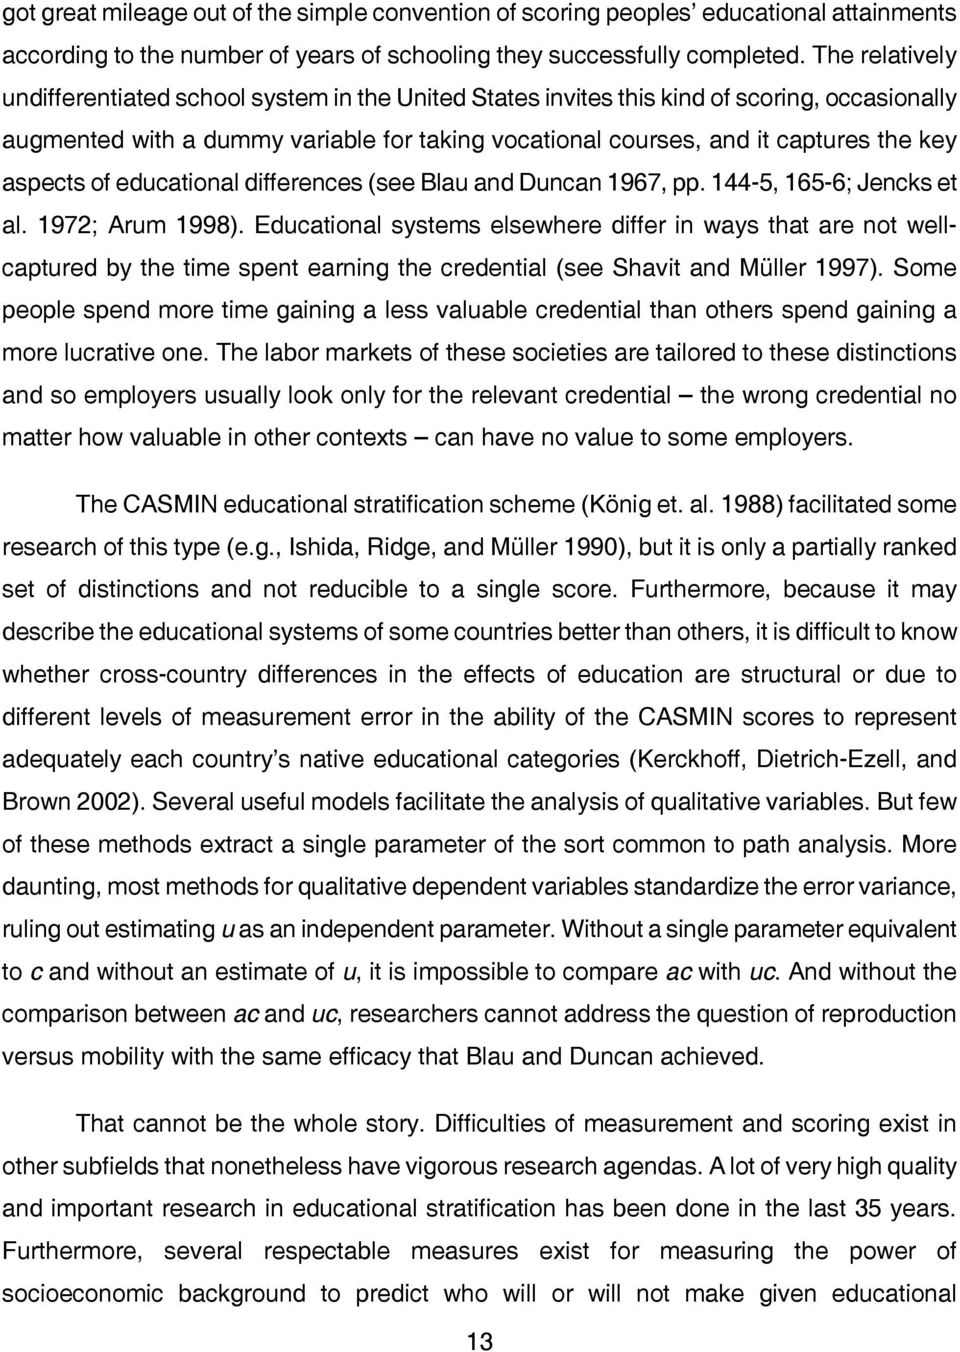 aspects of educational differences (see Blau and Duncan 1967, pp. 144-5, 165-6; Jencks et al. 1972; Arum 1998).